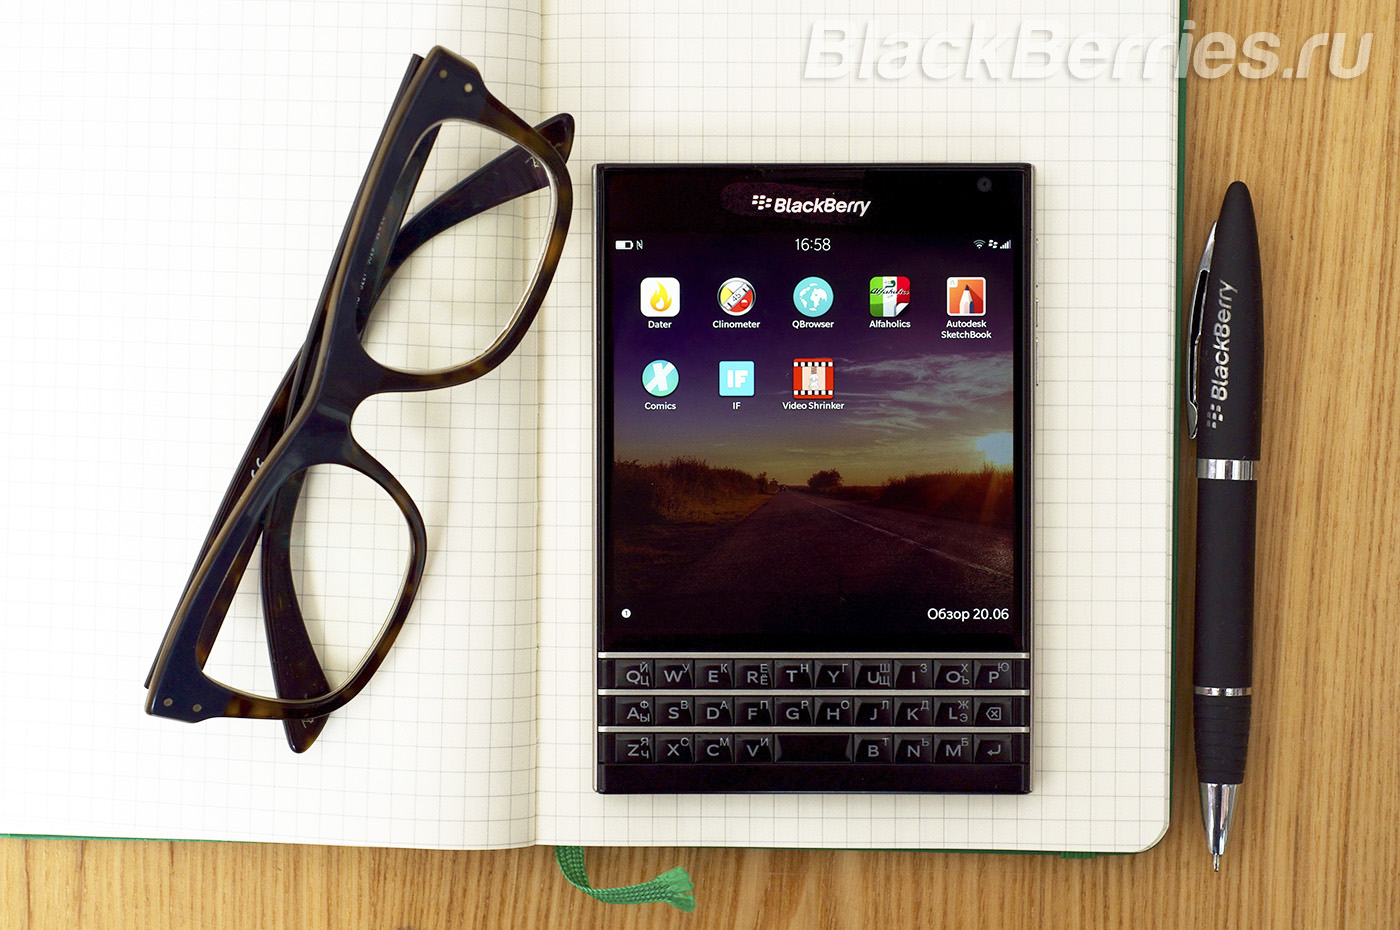 BlackBerry-Passport-Apps-20-06-16